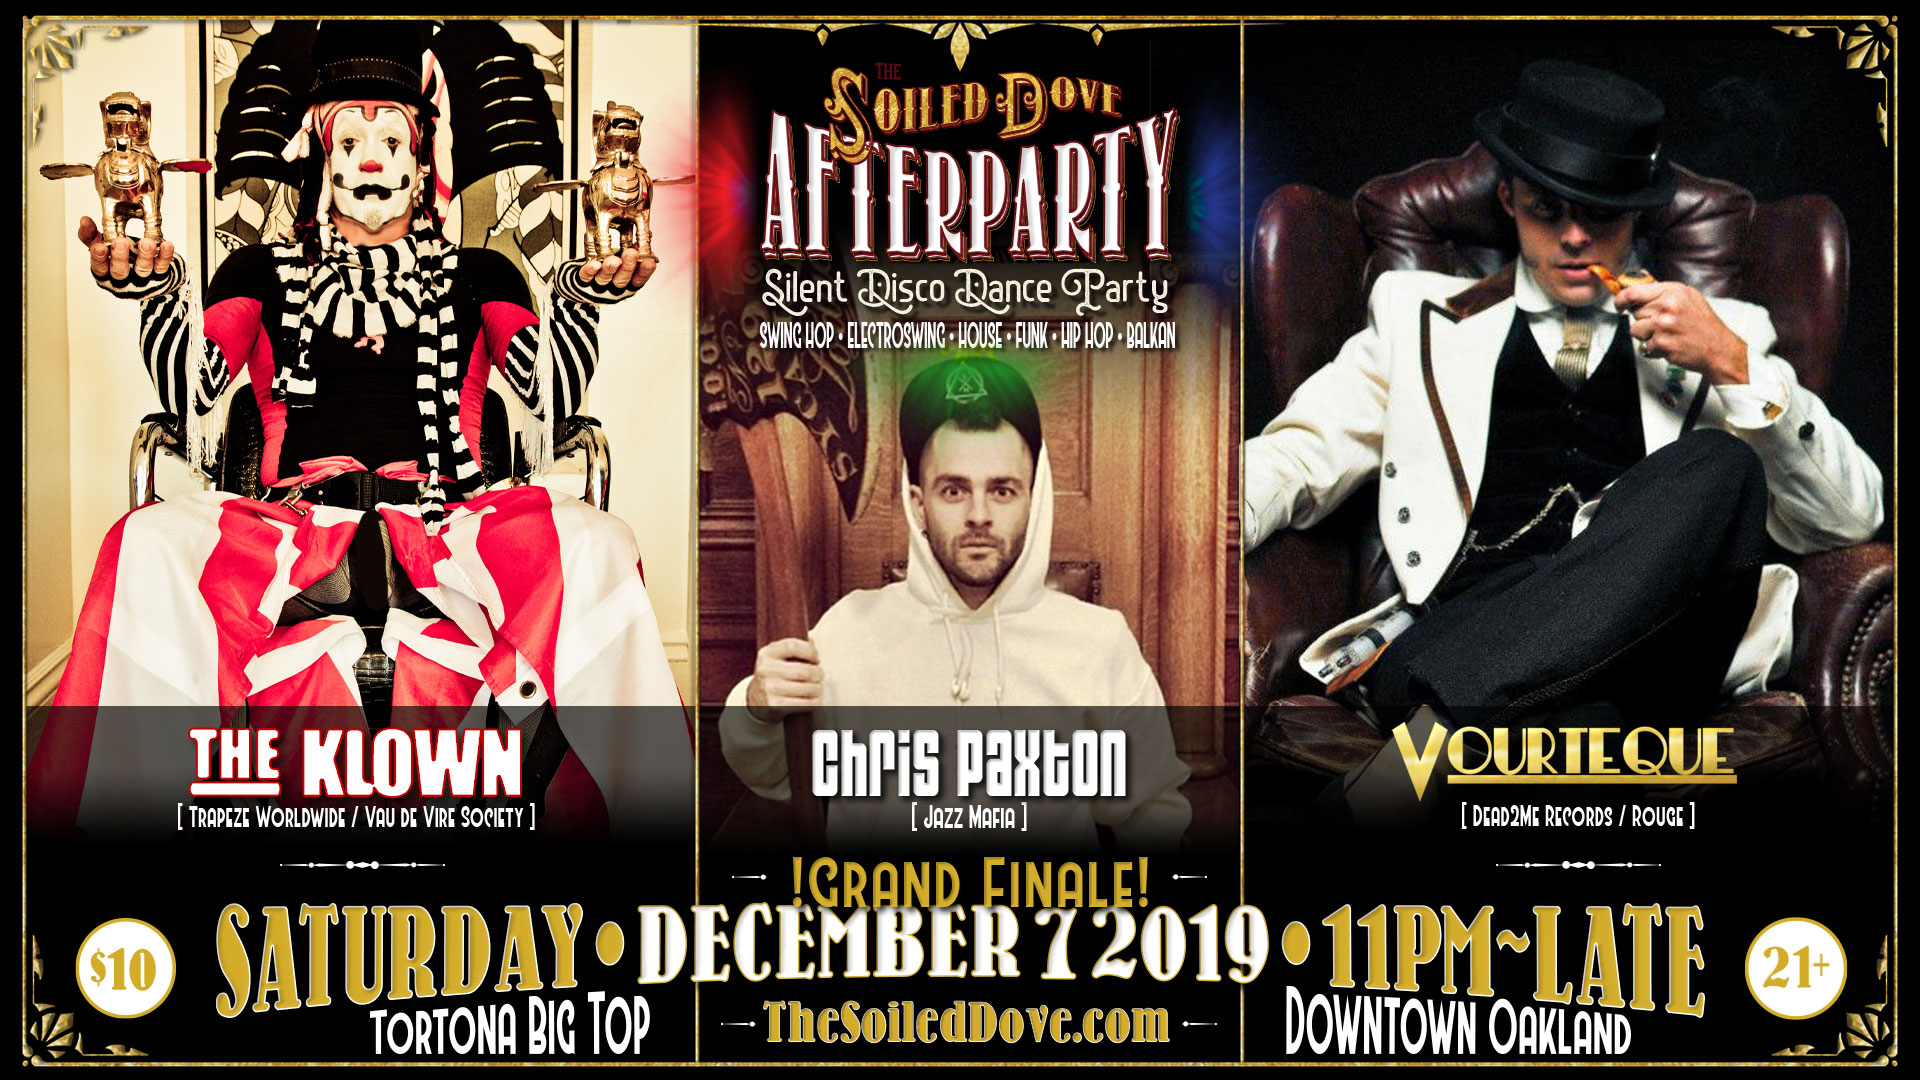 The Soiled Dove silent disco Afterparties with The Klown, Vourteque & Chris Paxton - December 7, 2019 - Tortona Big Top in downtown Oakland